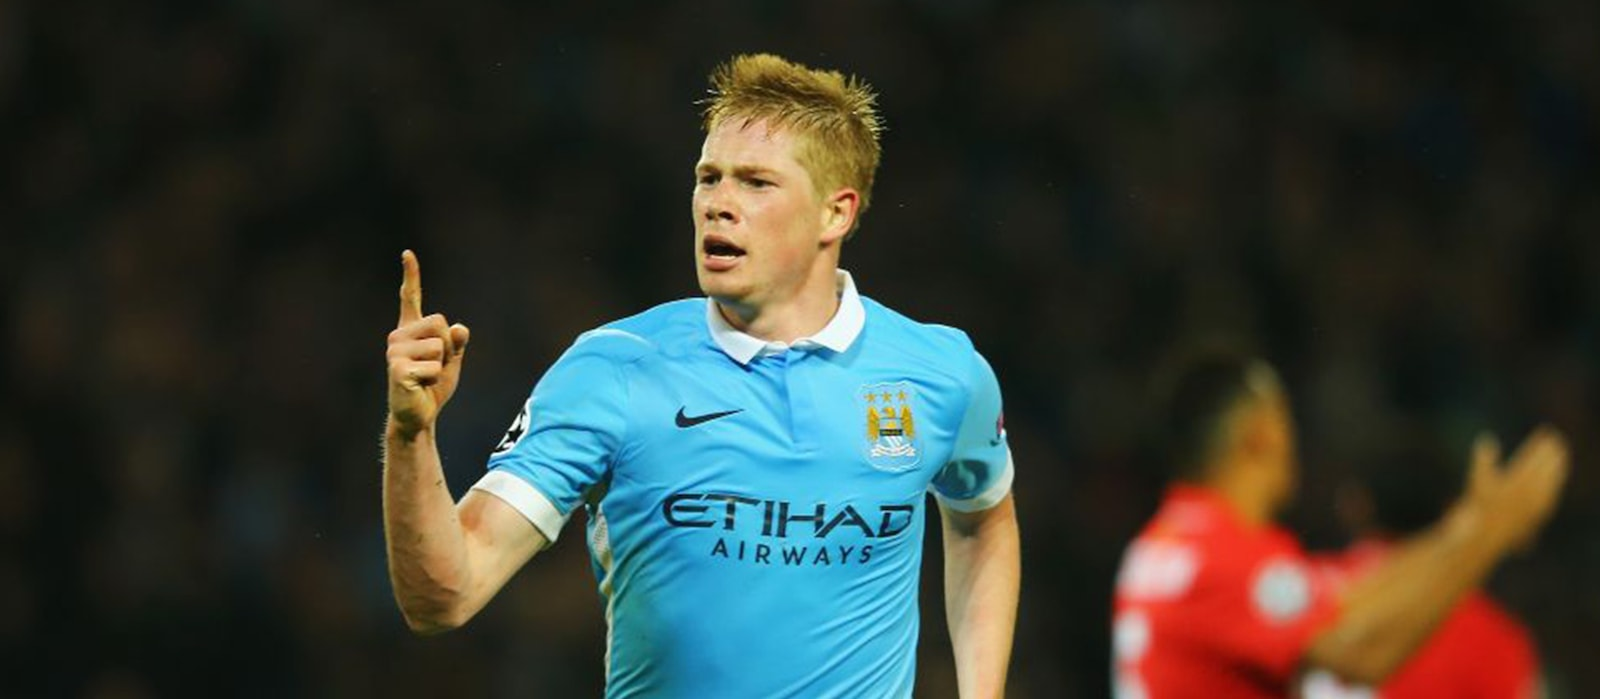 Kevin De Bruyne: I ran out of patience with Jose Mourinho at Chelsea